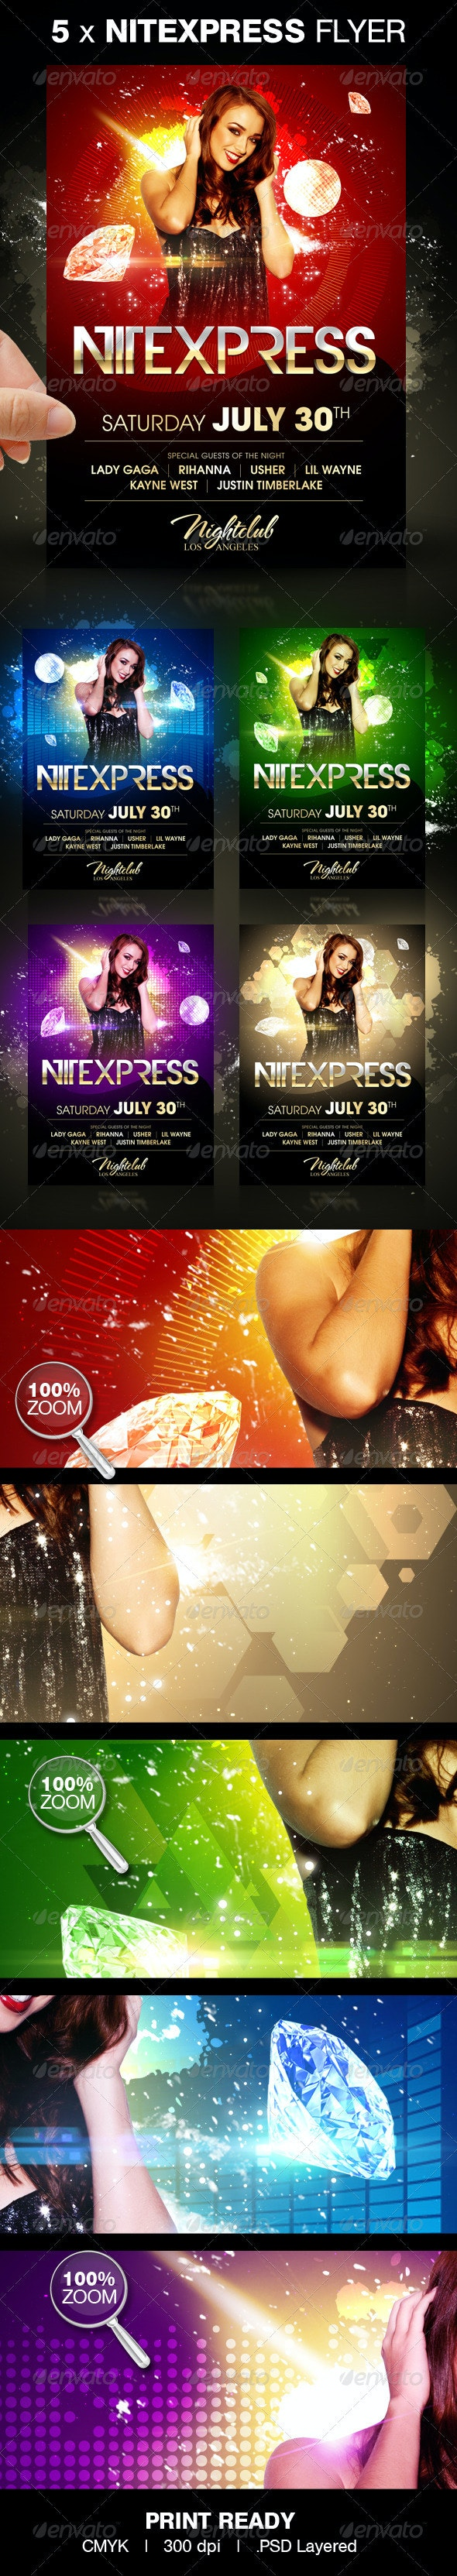 Nitexpress Party Flyer - Clubs & Parties Events